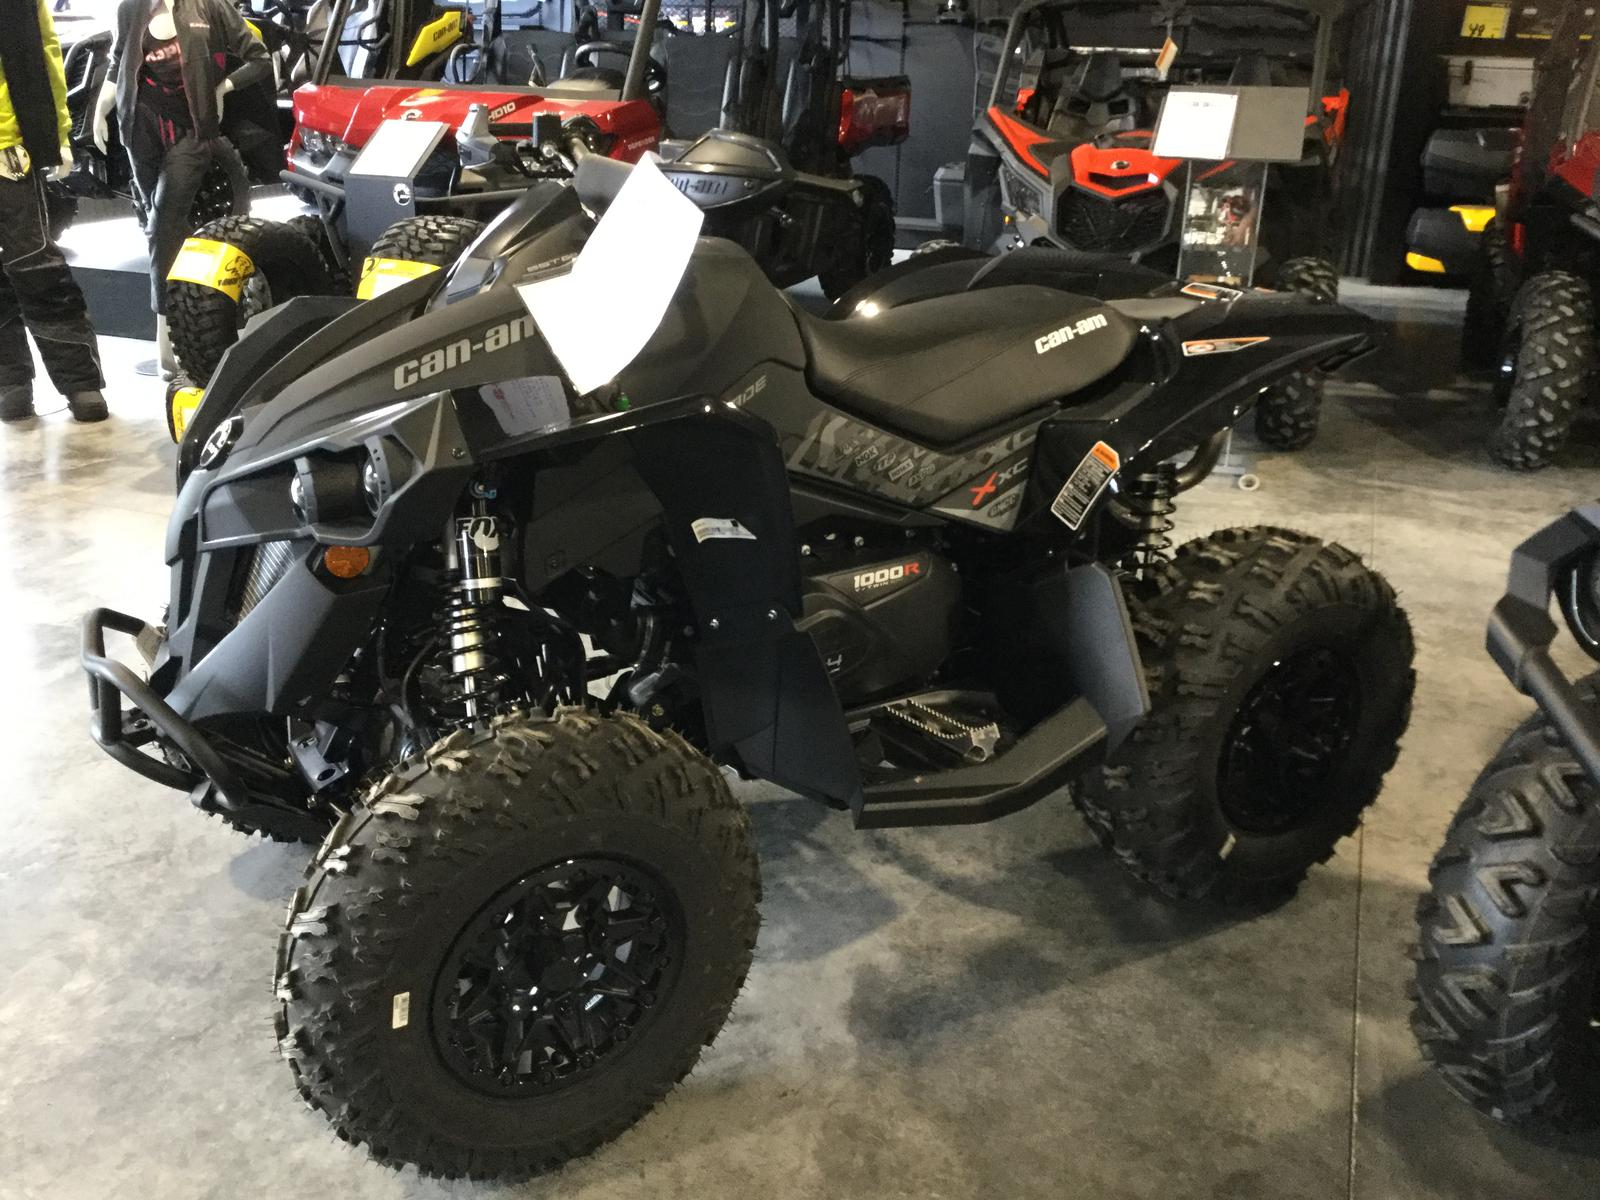 2017 Can Am RENEGADE XXC 1000 for sale in Ronan MT S & S Sports